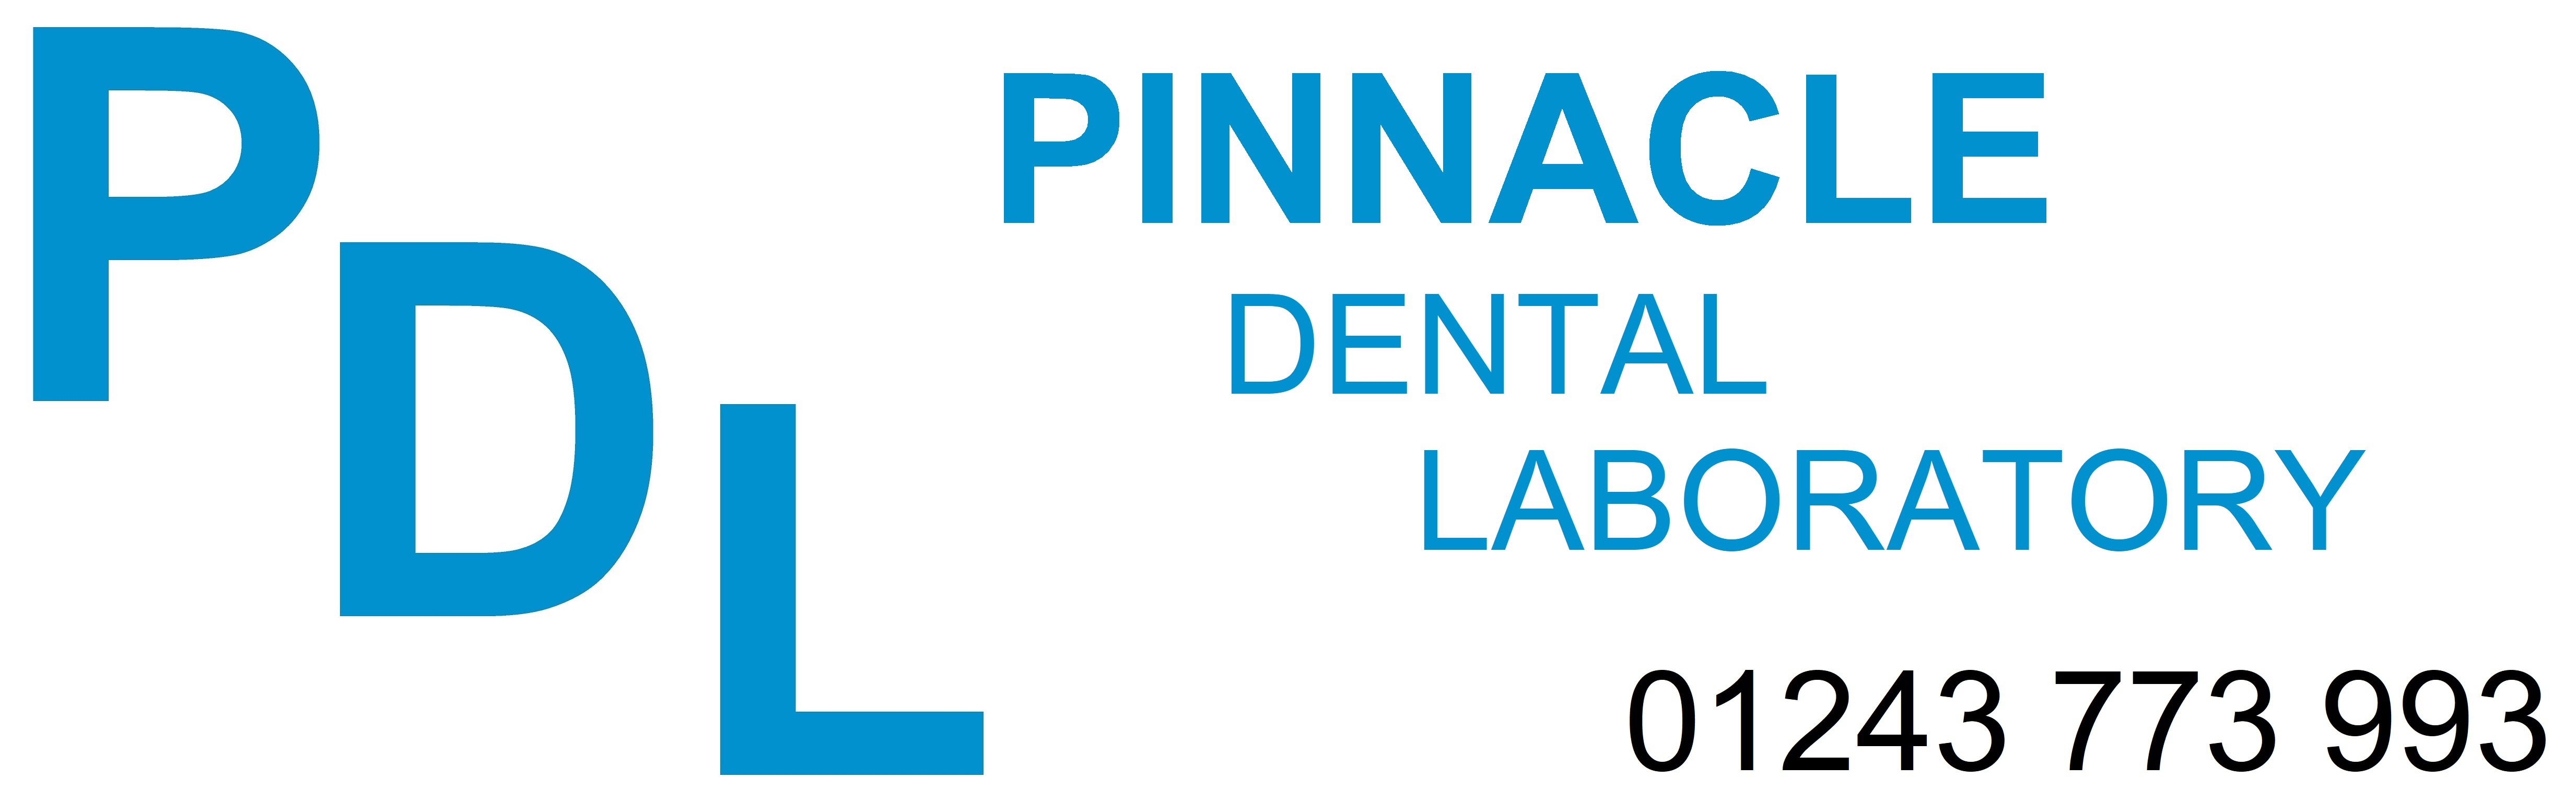 Pinnacle Dental Laboratory